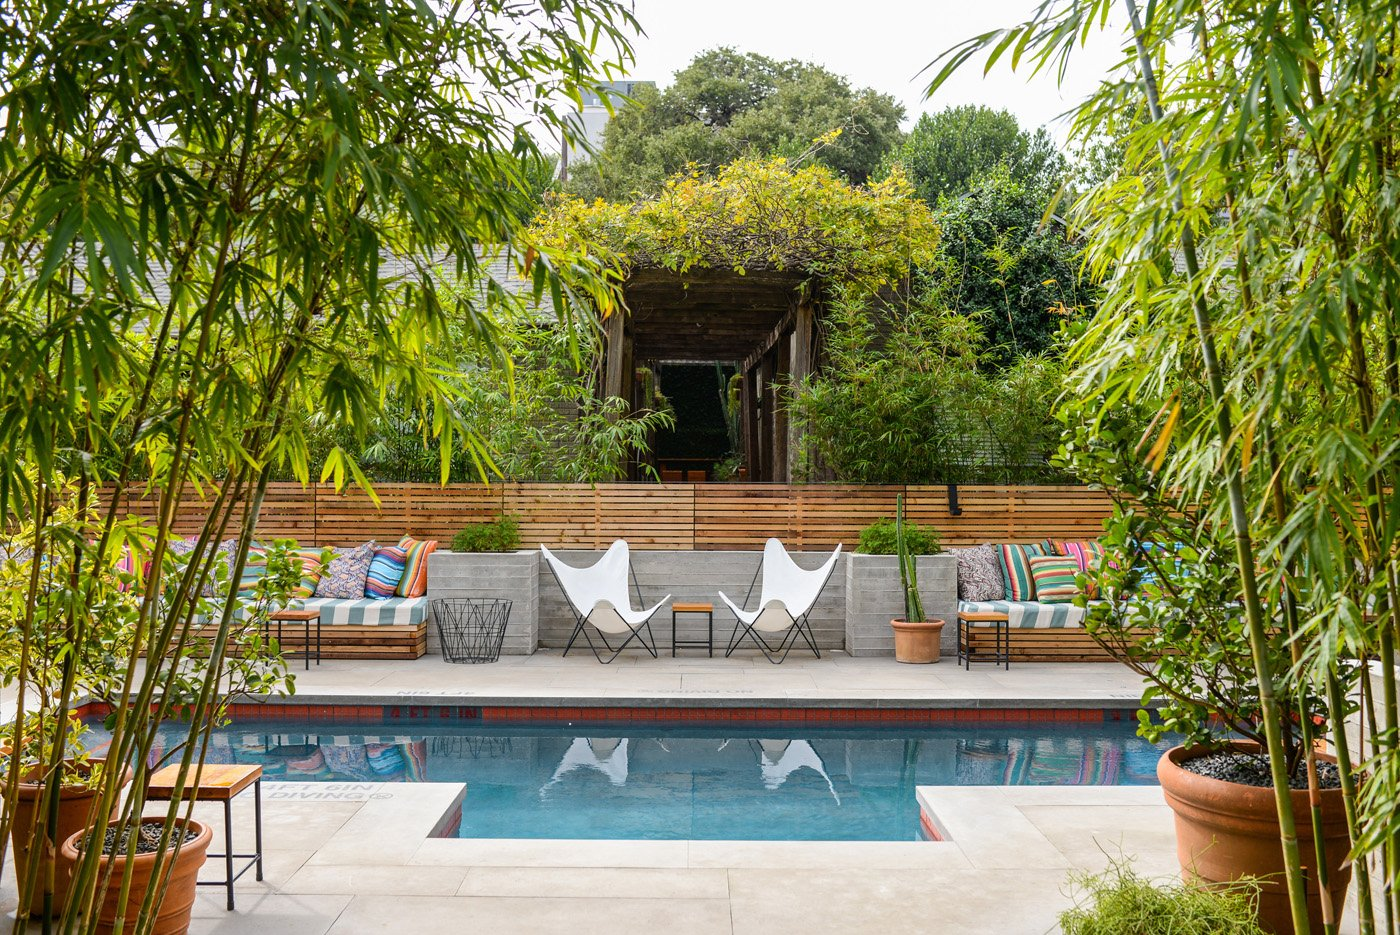 Pool and courtyard surrounded by lush trees